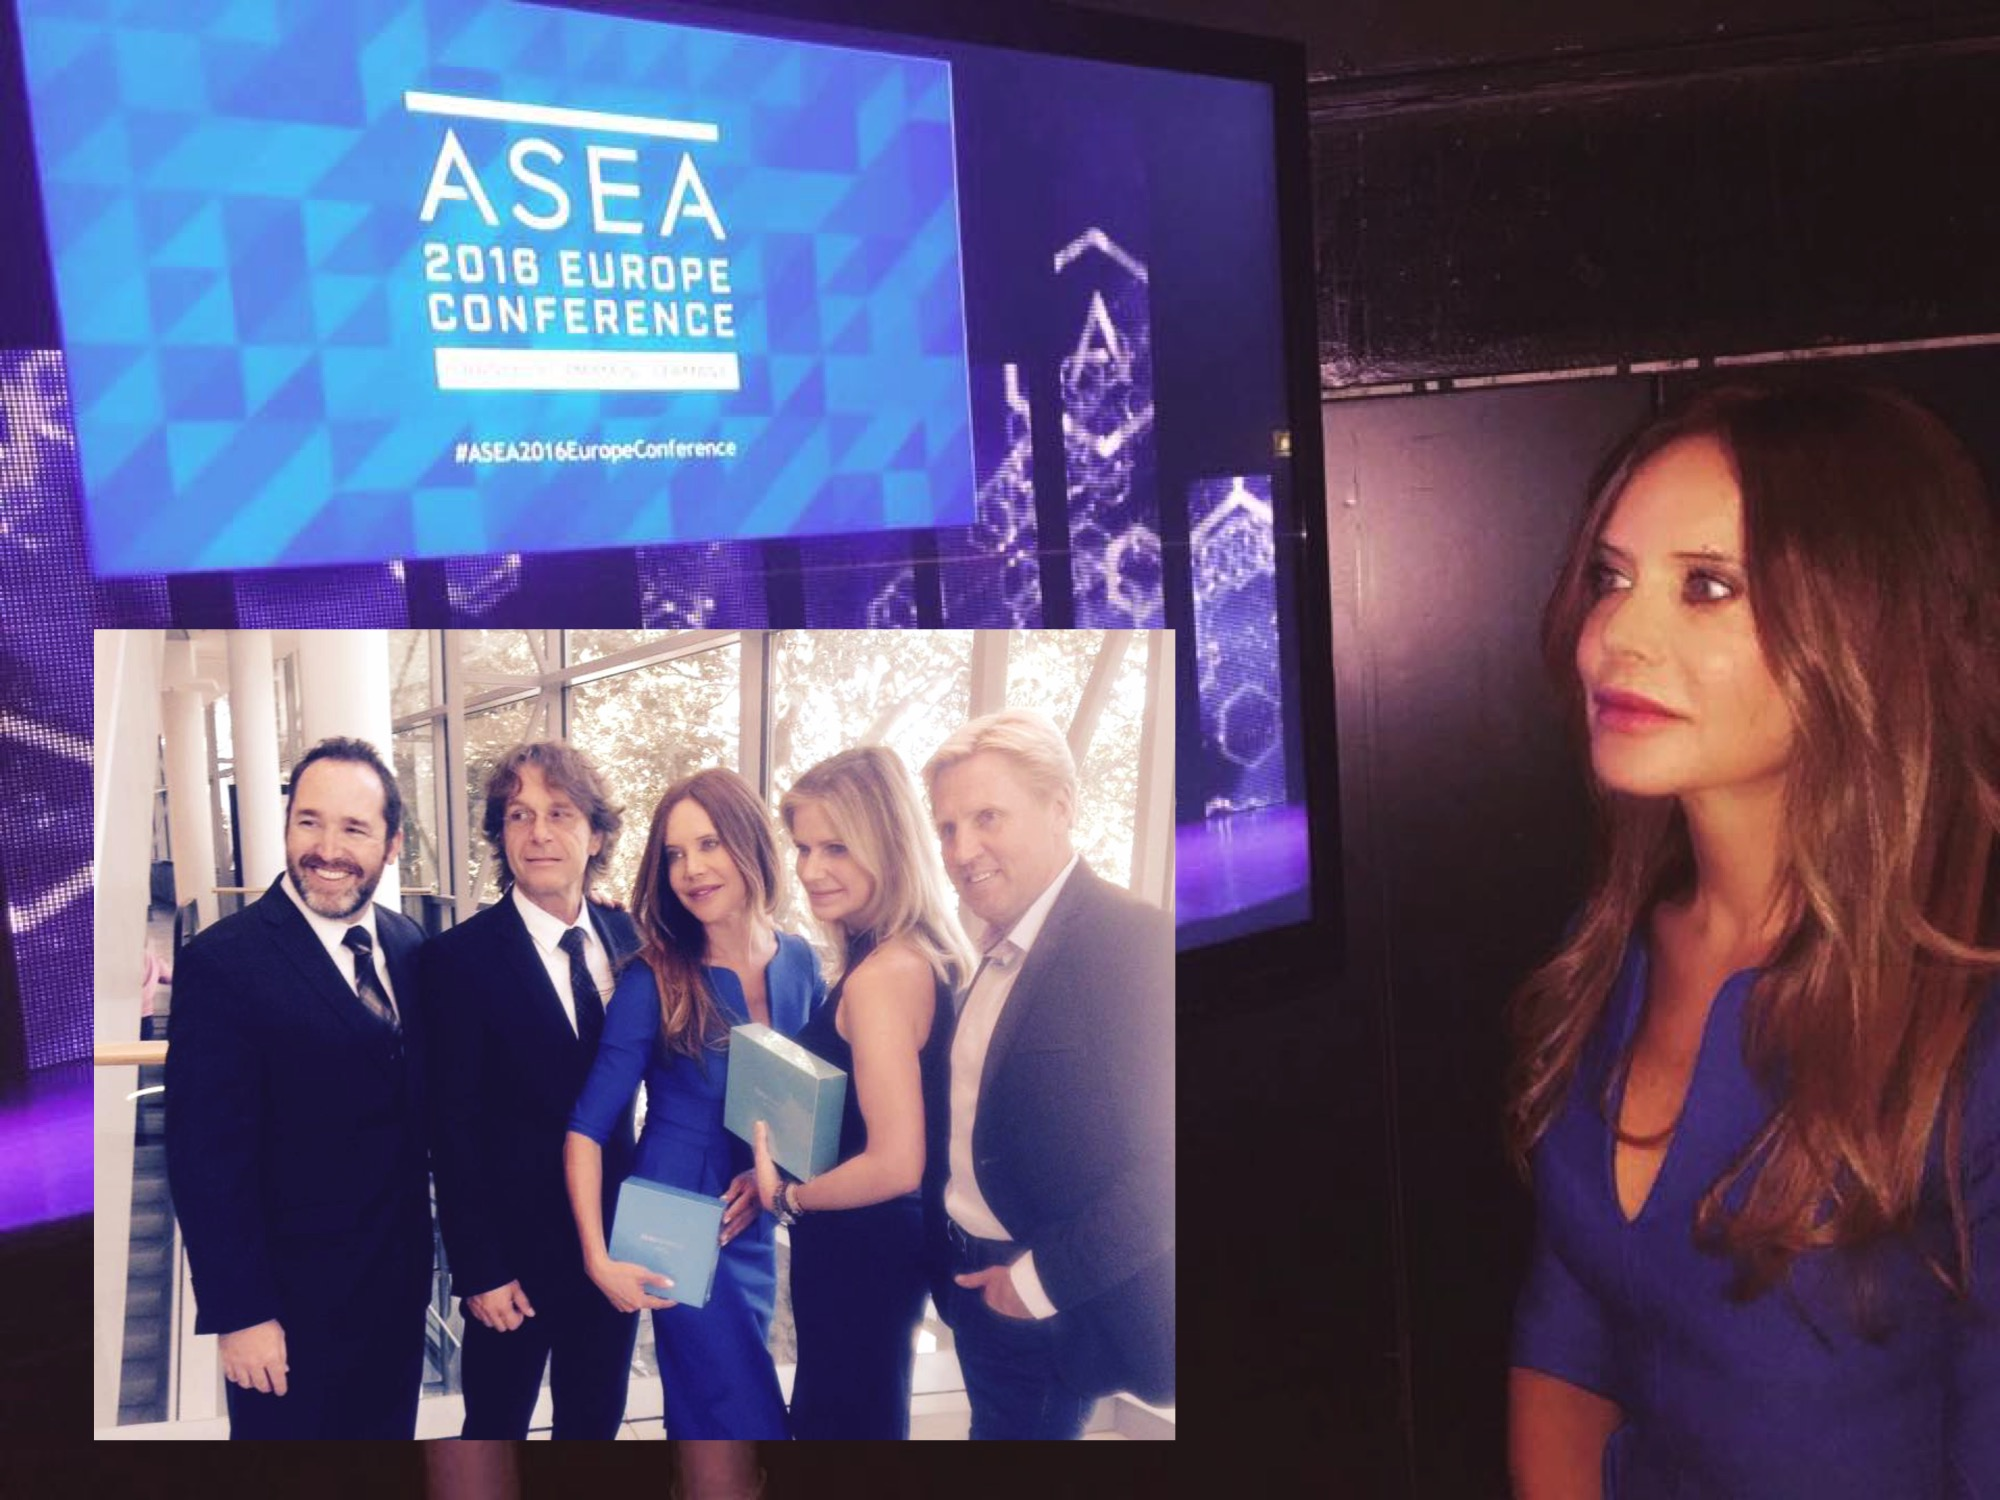 ASEA_Conference